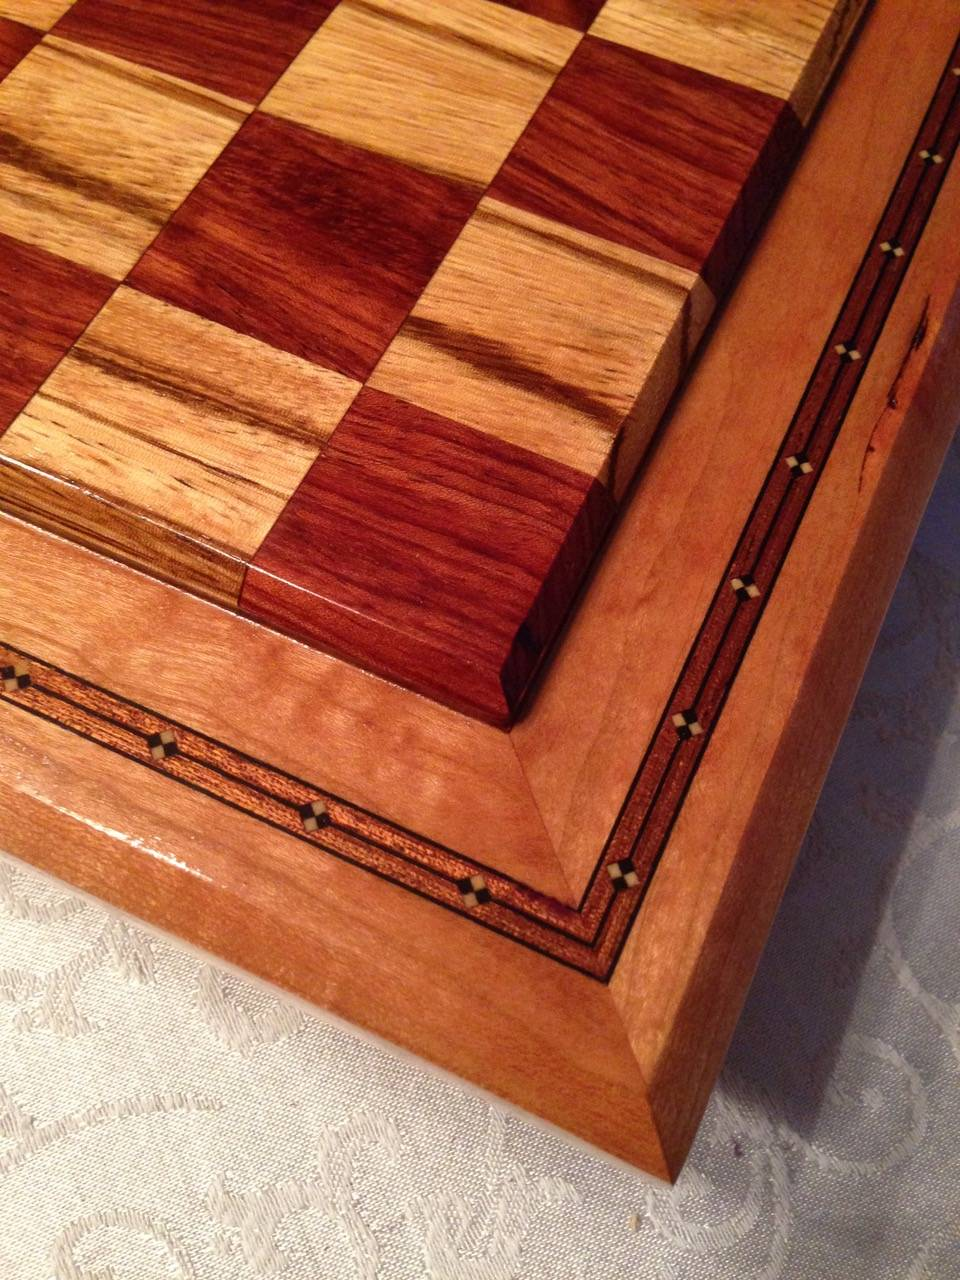 Chessboard created by Frank D'Aleo for a Charity Auction